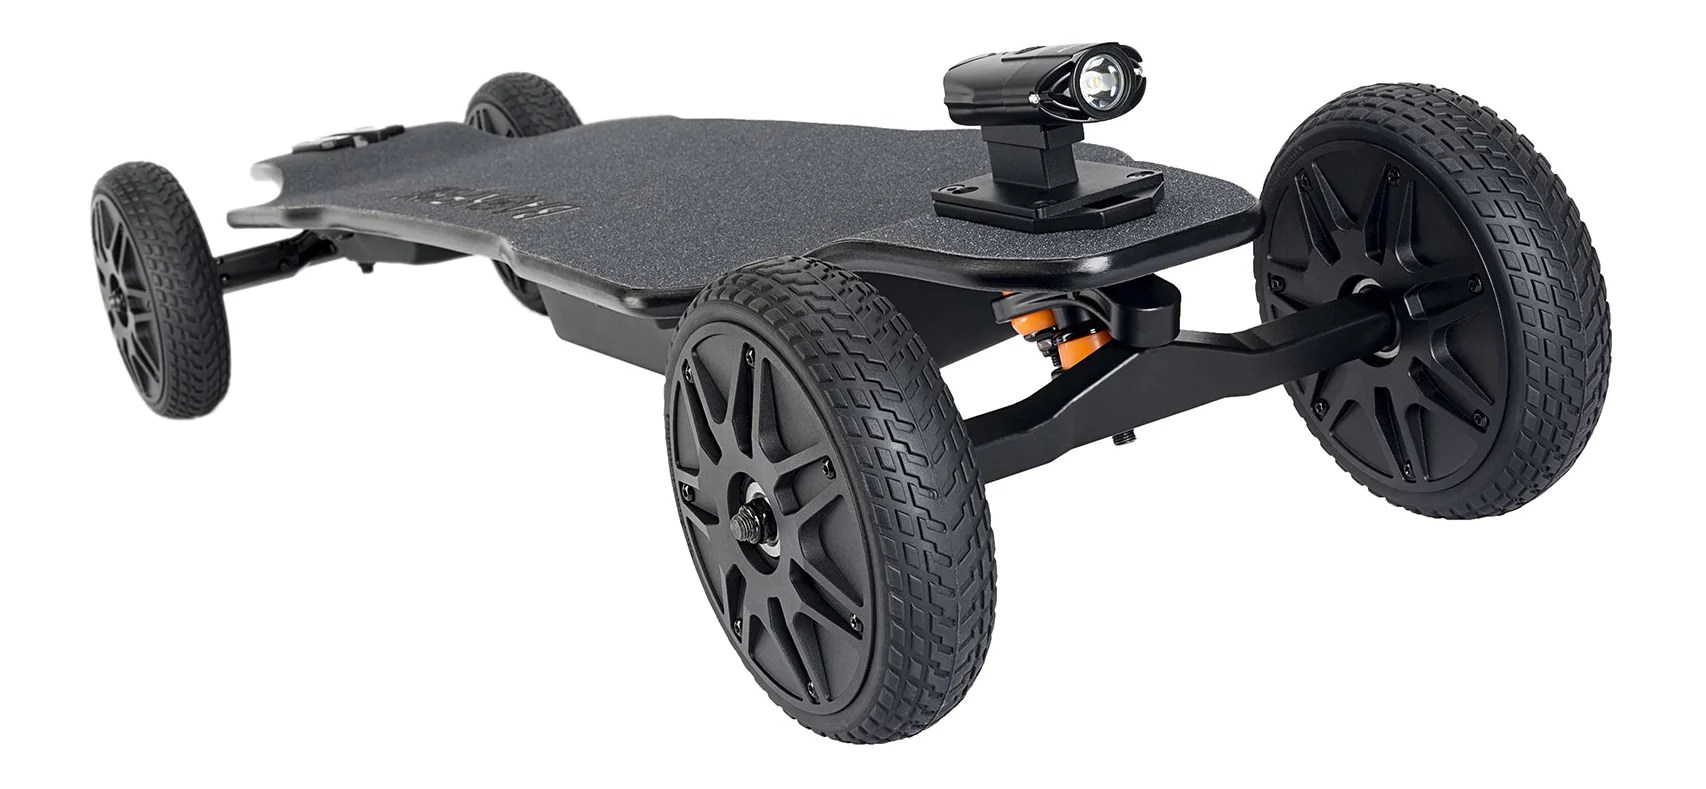 Backfire Ranger X1 All Terrain Electric Skateboard with R2 Wireless Remote (OLED Display) and 2.5a Faster Charger with 180 Days Warranty ...